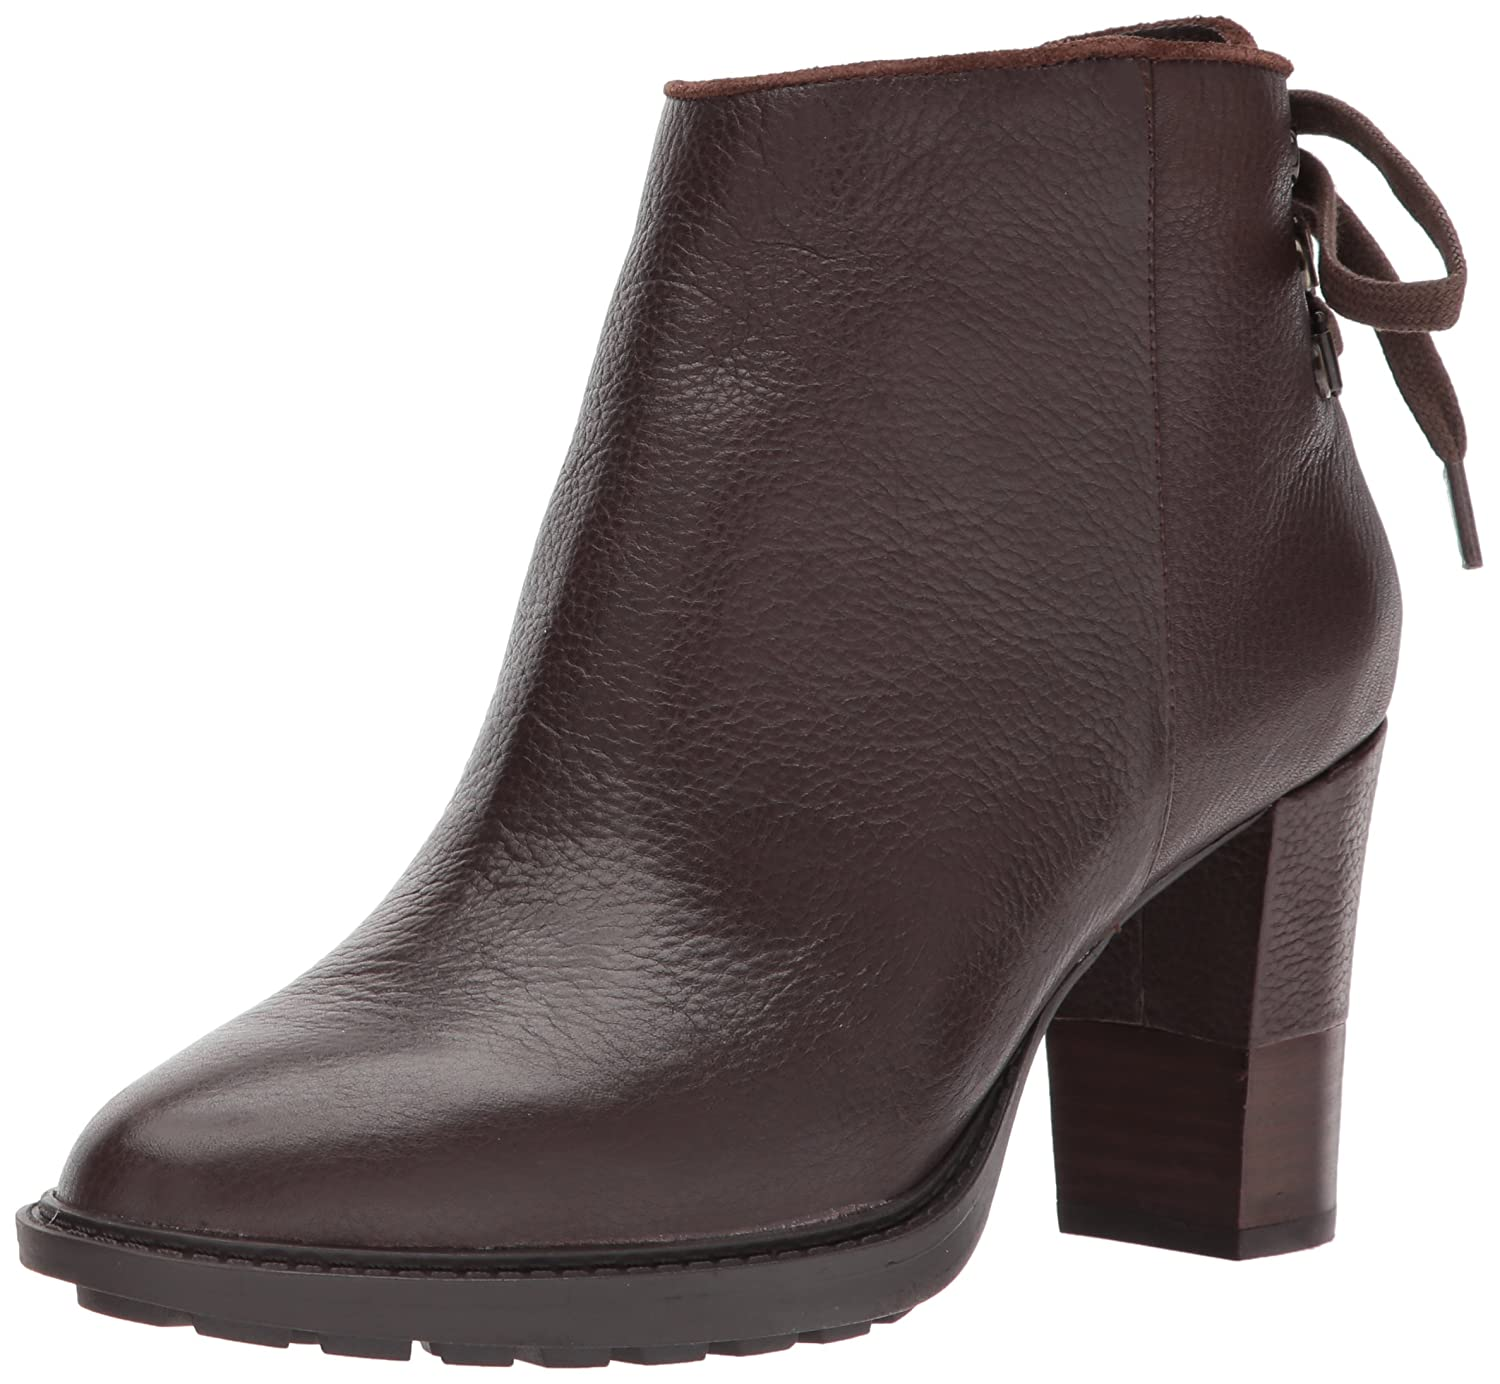 Aerosoles Women's Fact Fiction Ankle Boot B06Y636S7S 7 B(M) US|Dark Brown Leather